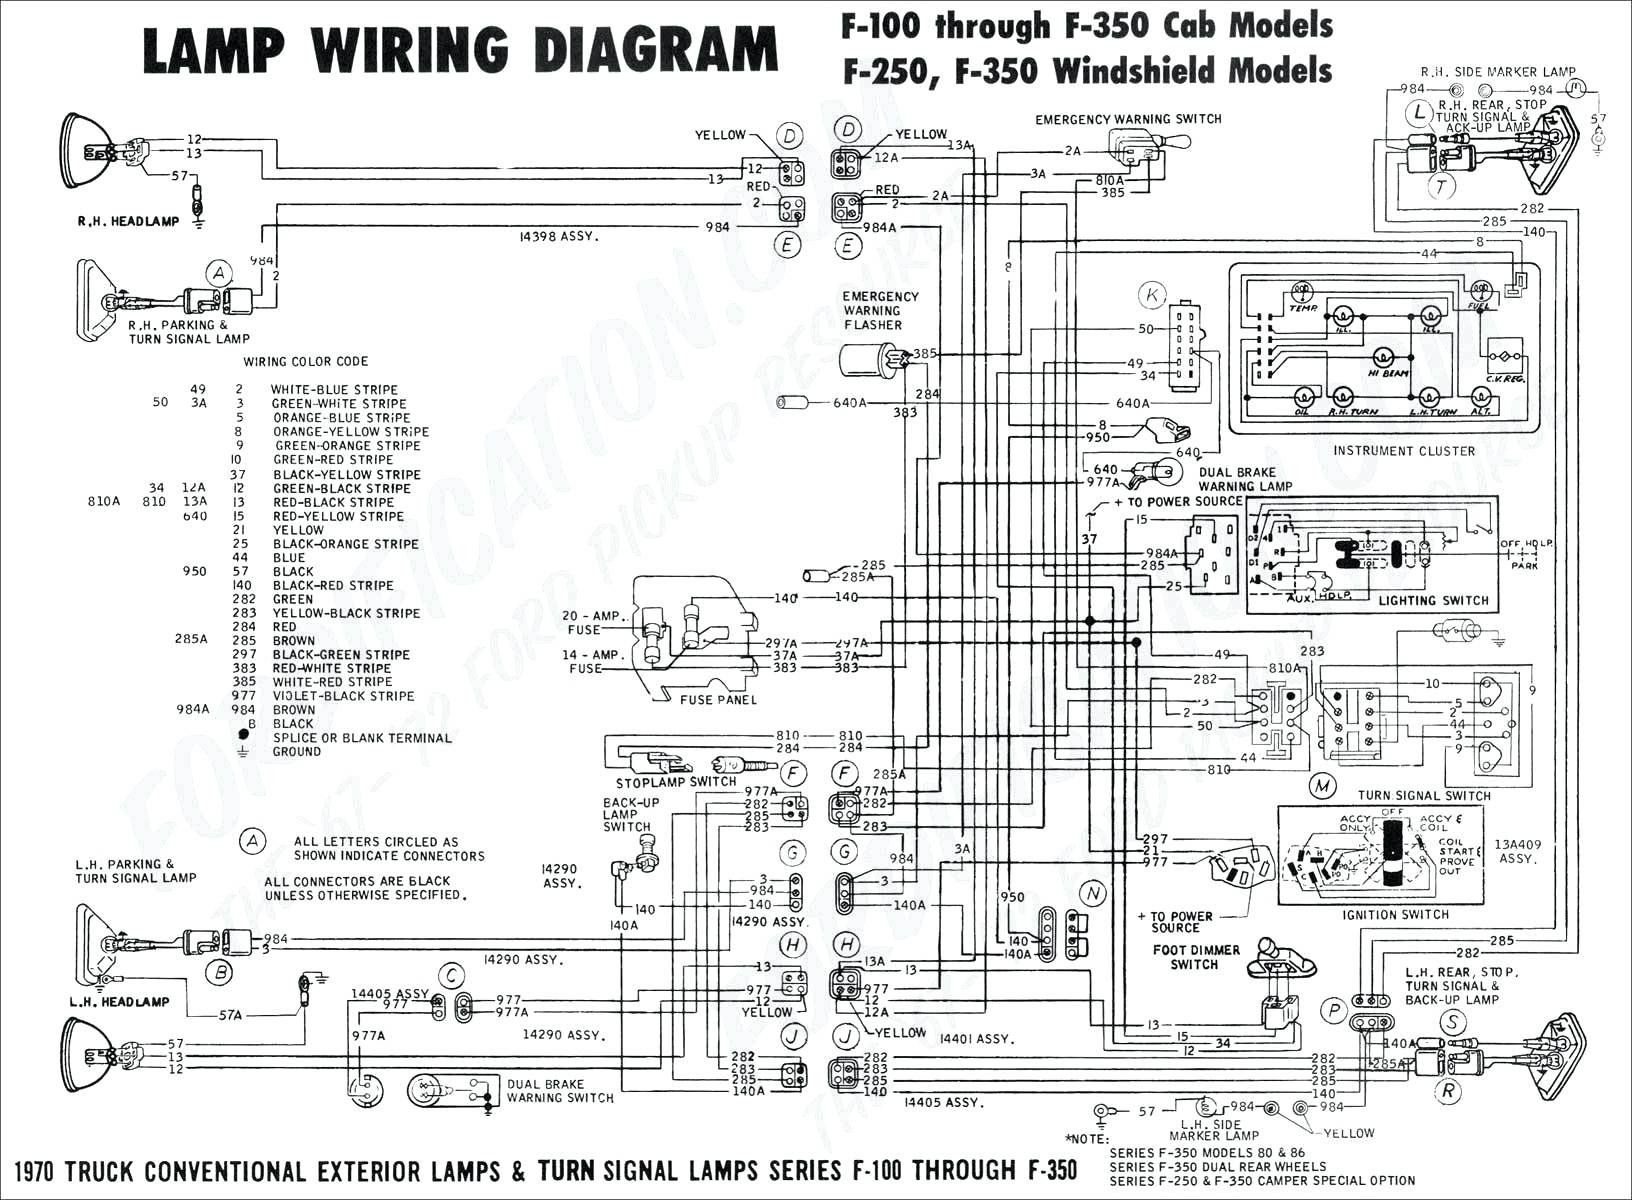 2006 ford f350 wiring diagram - data wiring diagrams • regarding ford f250  wiring diagram | electrical diagram, trailer wiring diagram, electrical  wiring diagram  pinterest